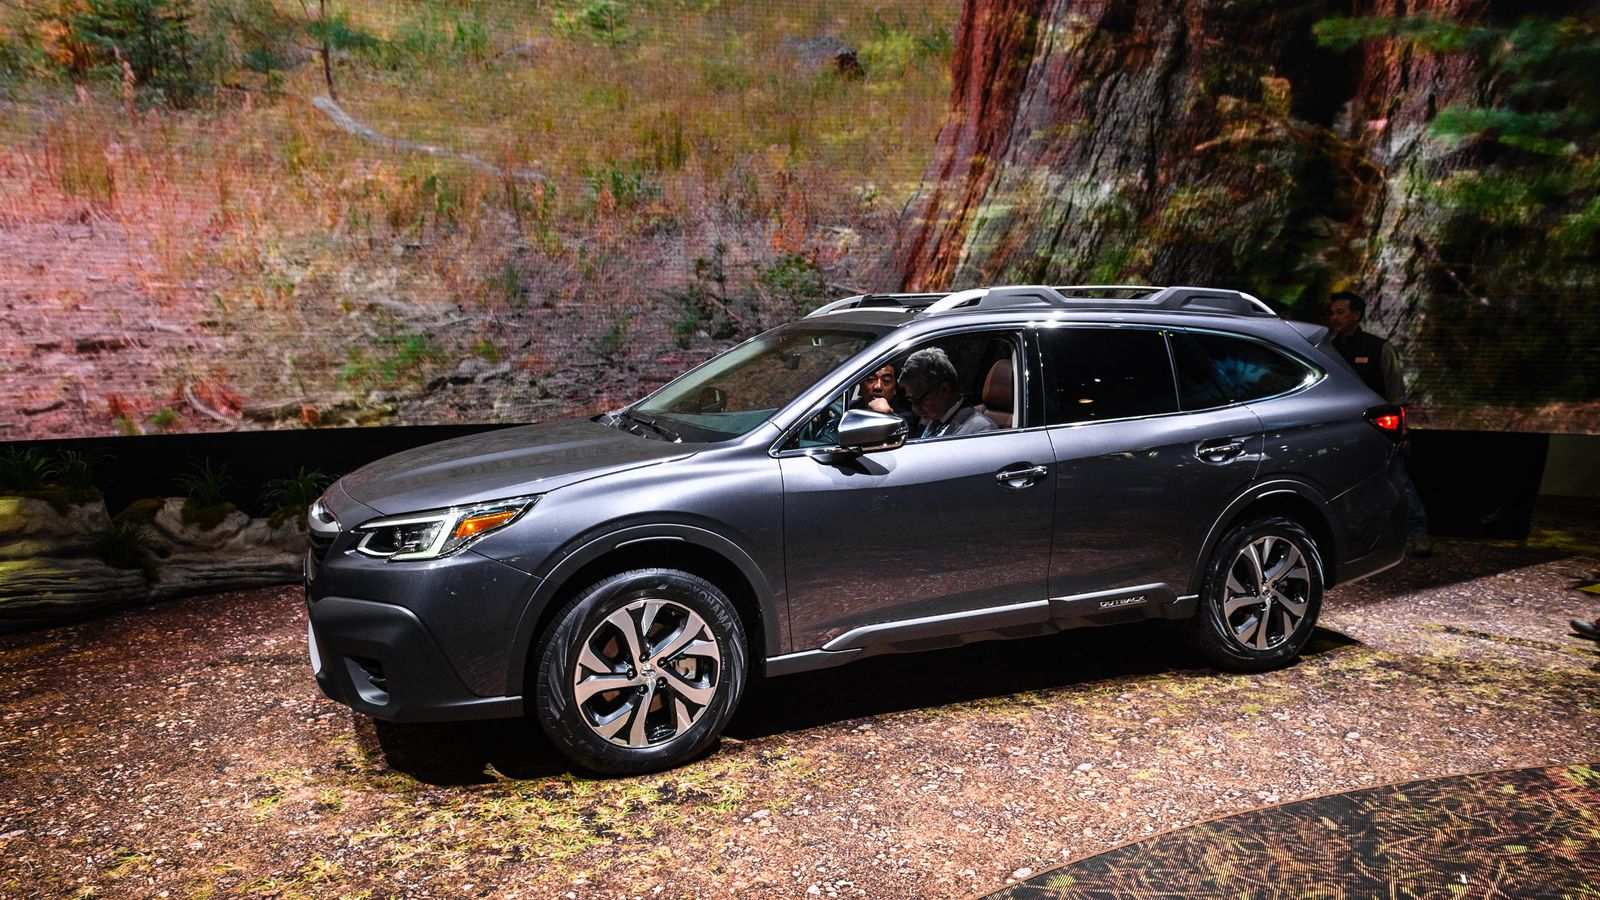 92 The 2020 Subaru Outback Photos Overview for 2020 Subaru Outback Photos